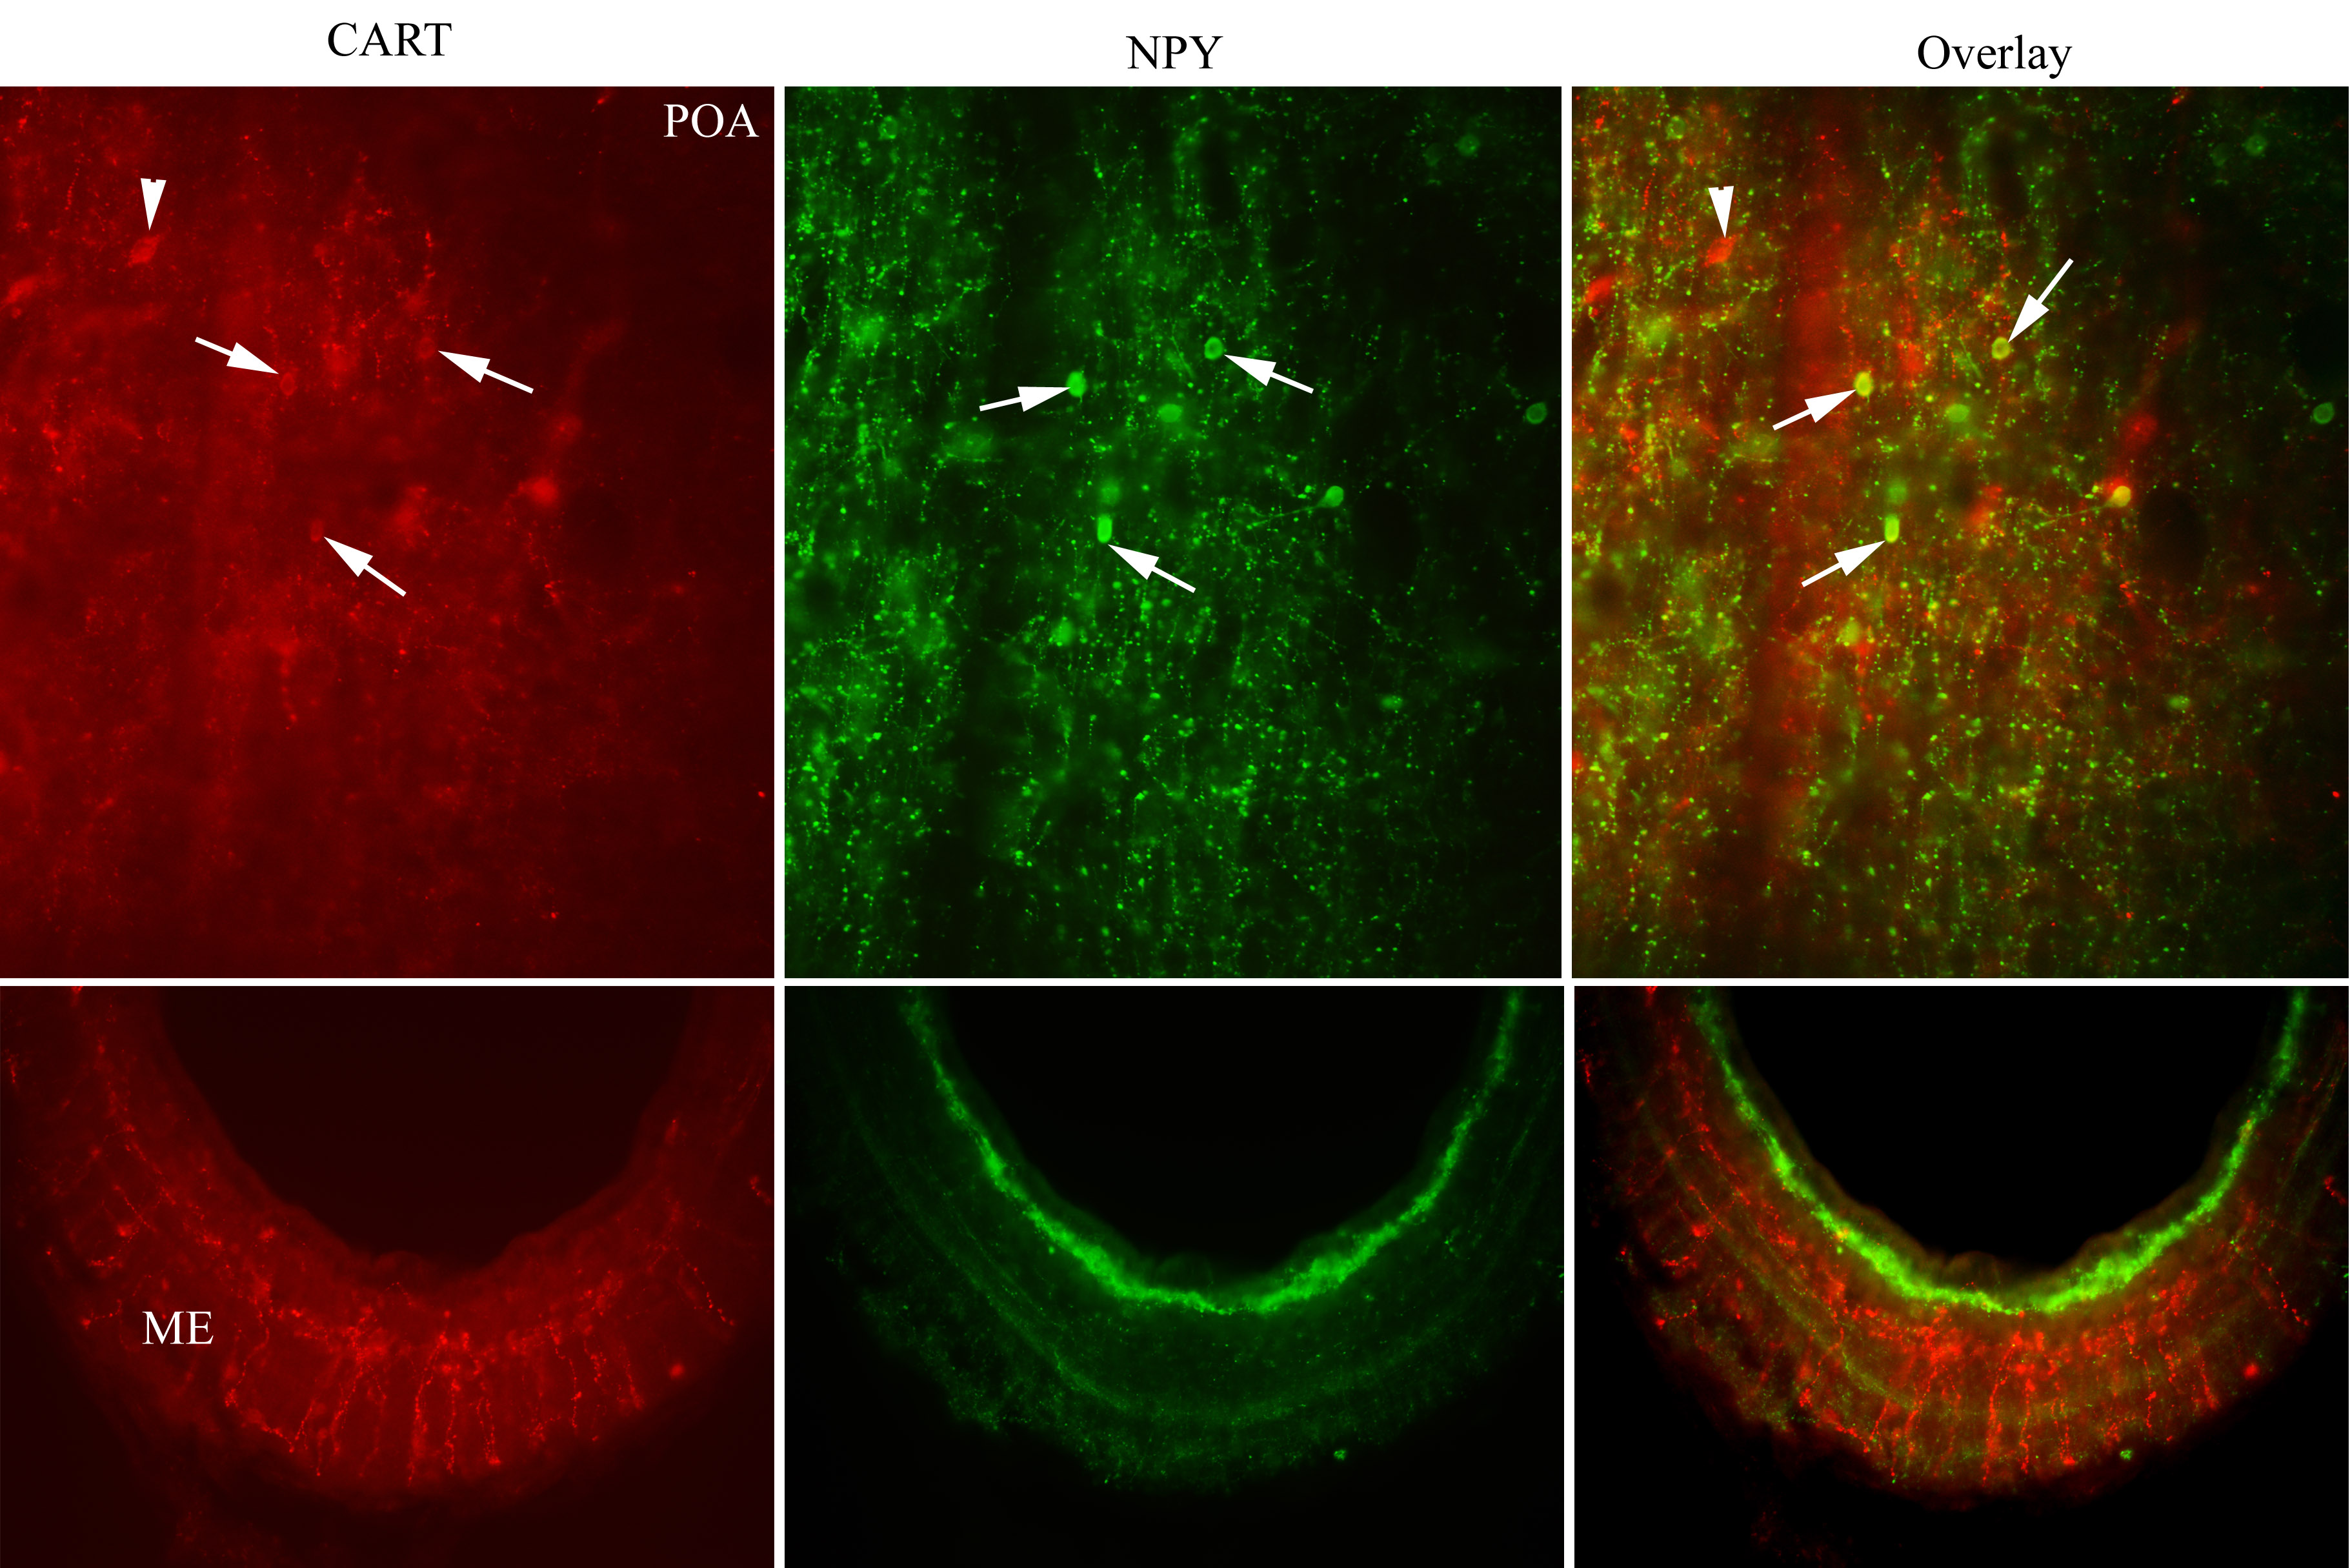 Fluorescent imaging of fluorescent proteins CART and NPY subcellular localization and their fusion expression